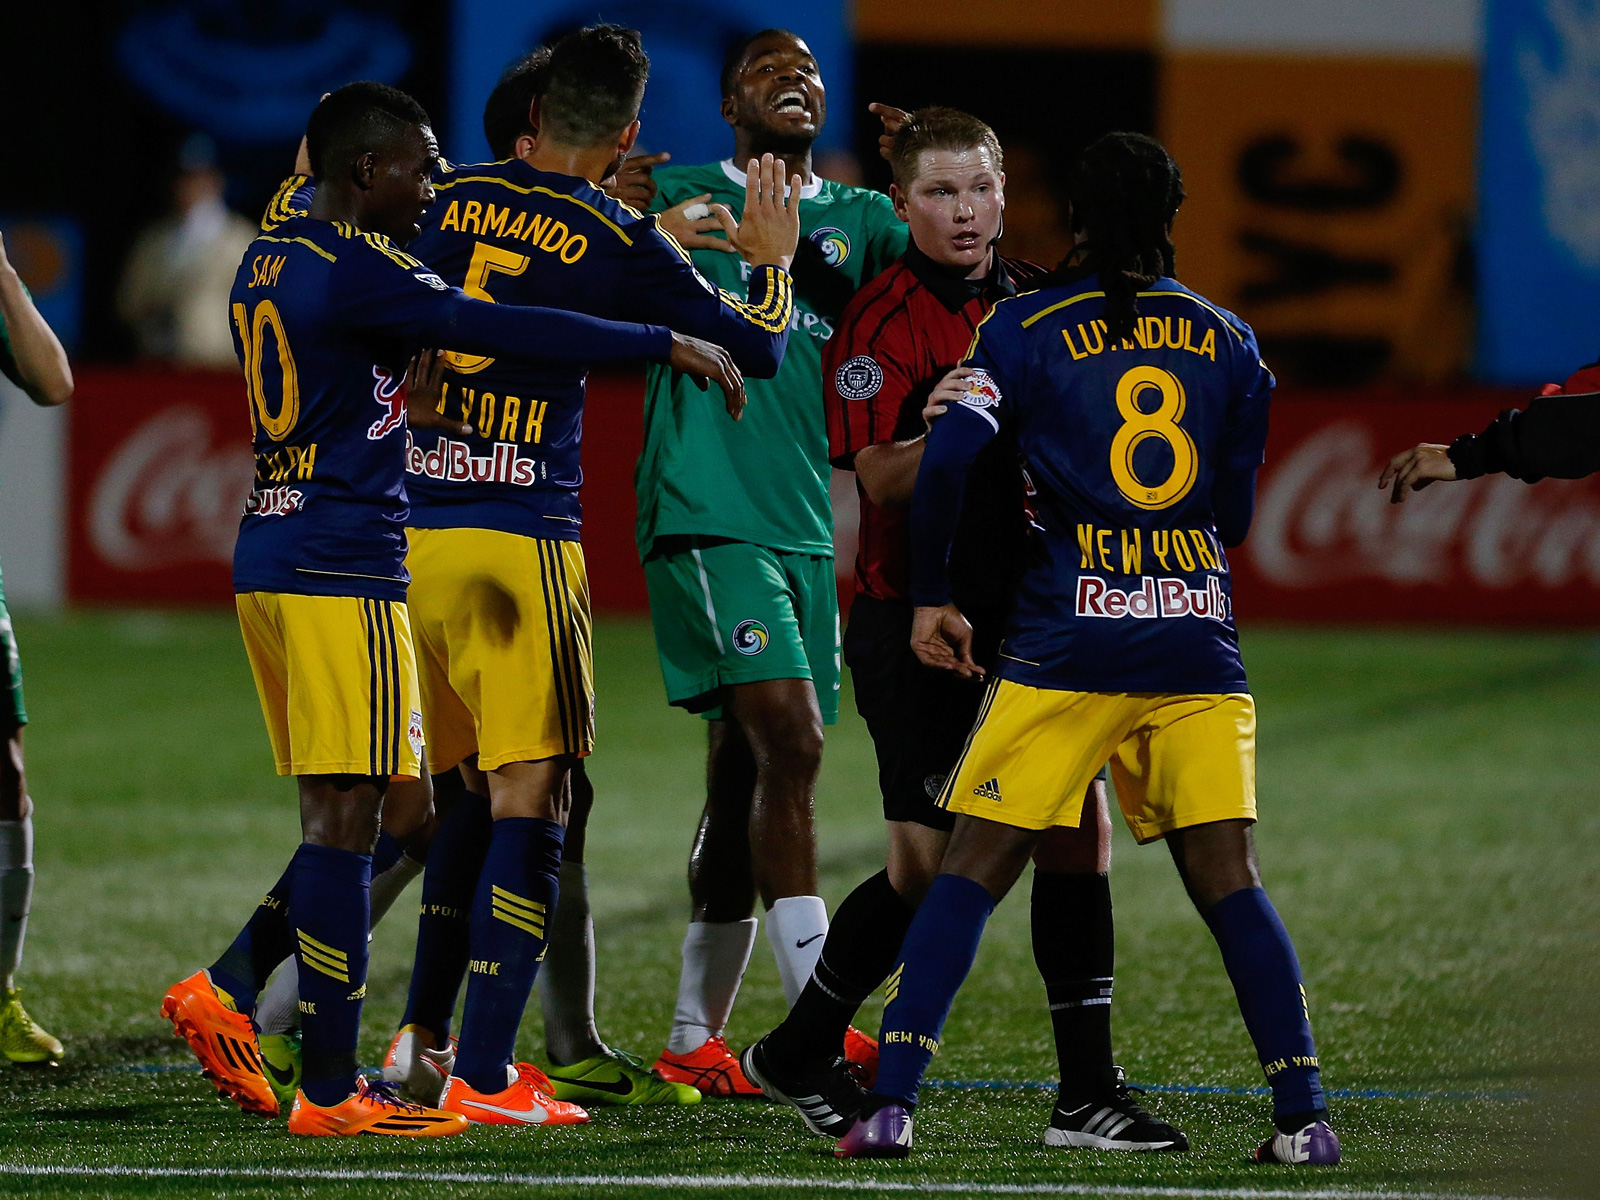 Tempers flare in the New York Red Bulls' 2014 U.S. Open Cup match against the New York Cosmos, won by the NASL team 3-0.